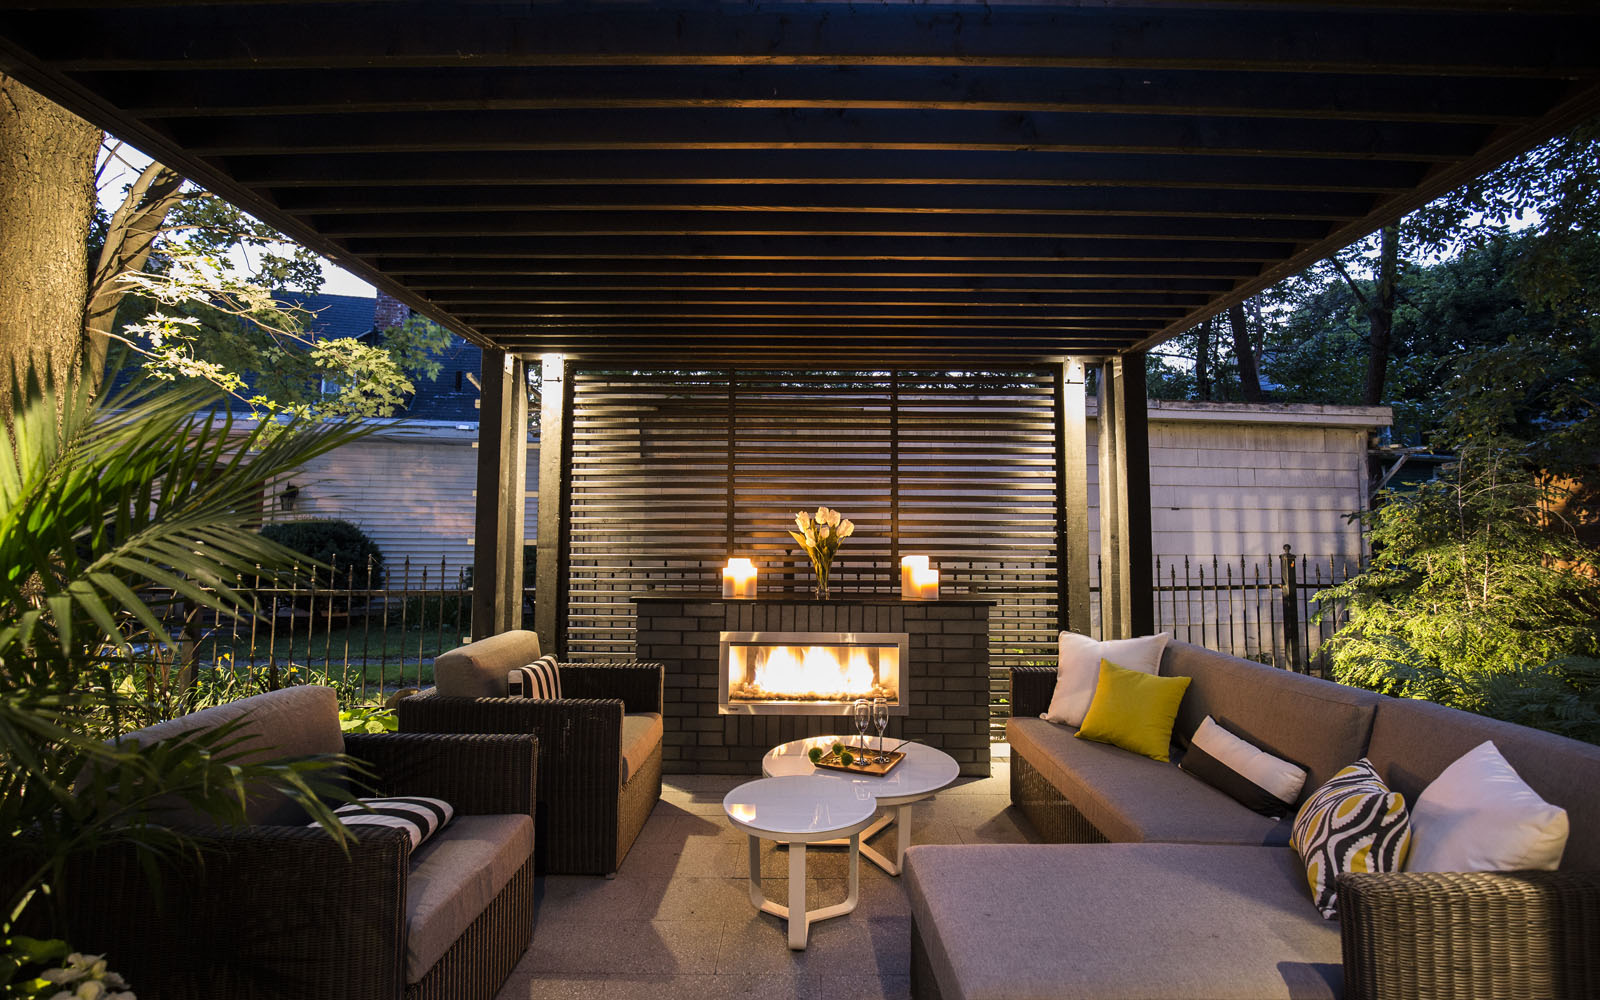 Outdoor living room for a resort-style backyard